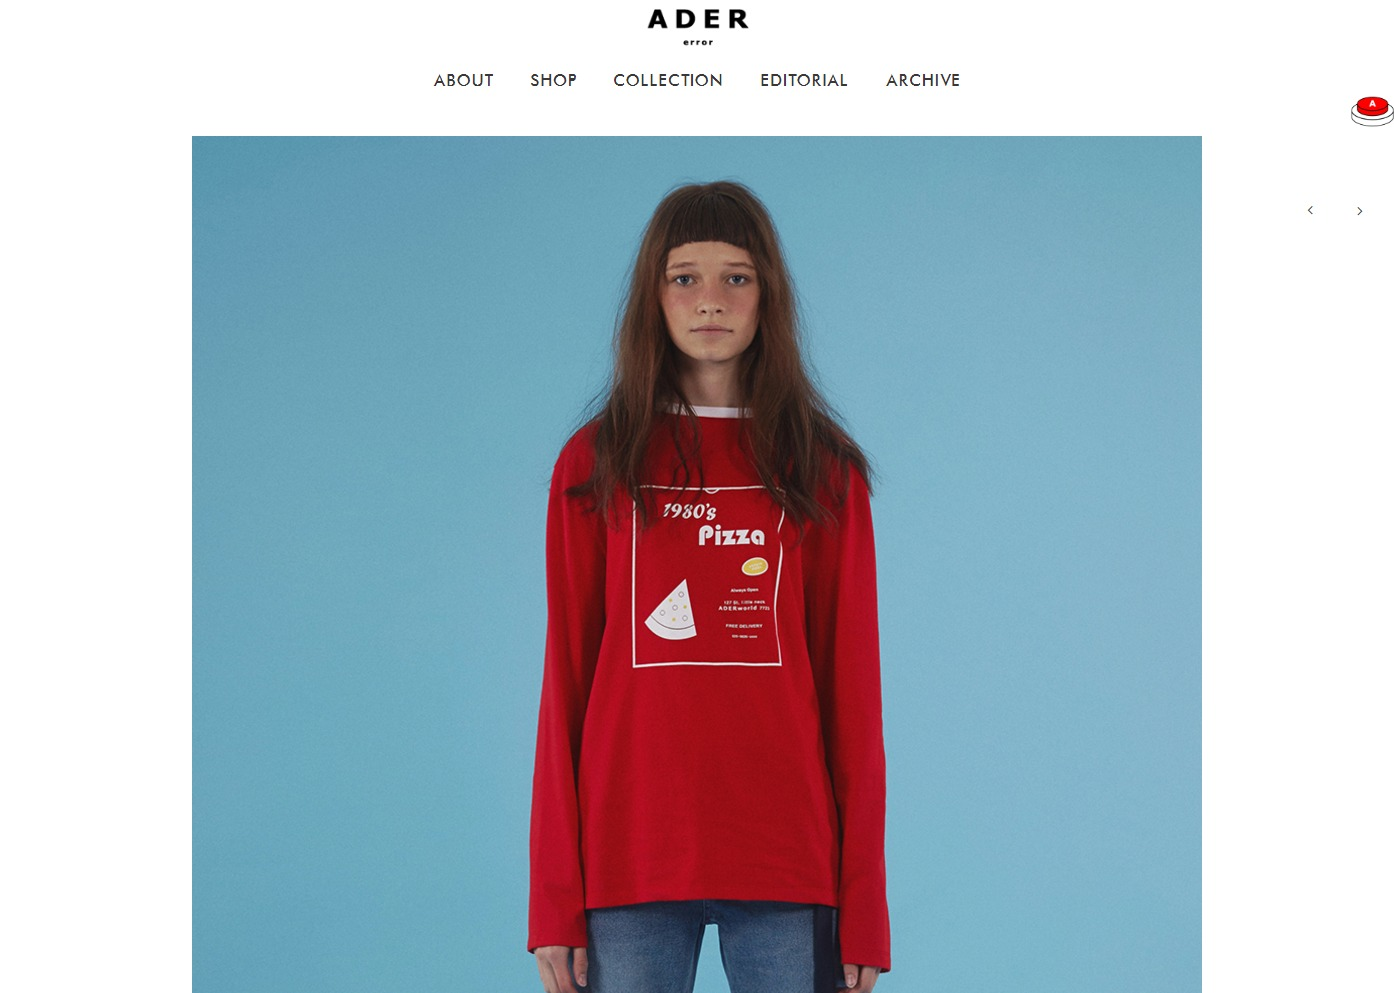 Pizza long sleeve t shirts red   Ader error2